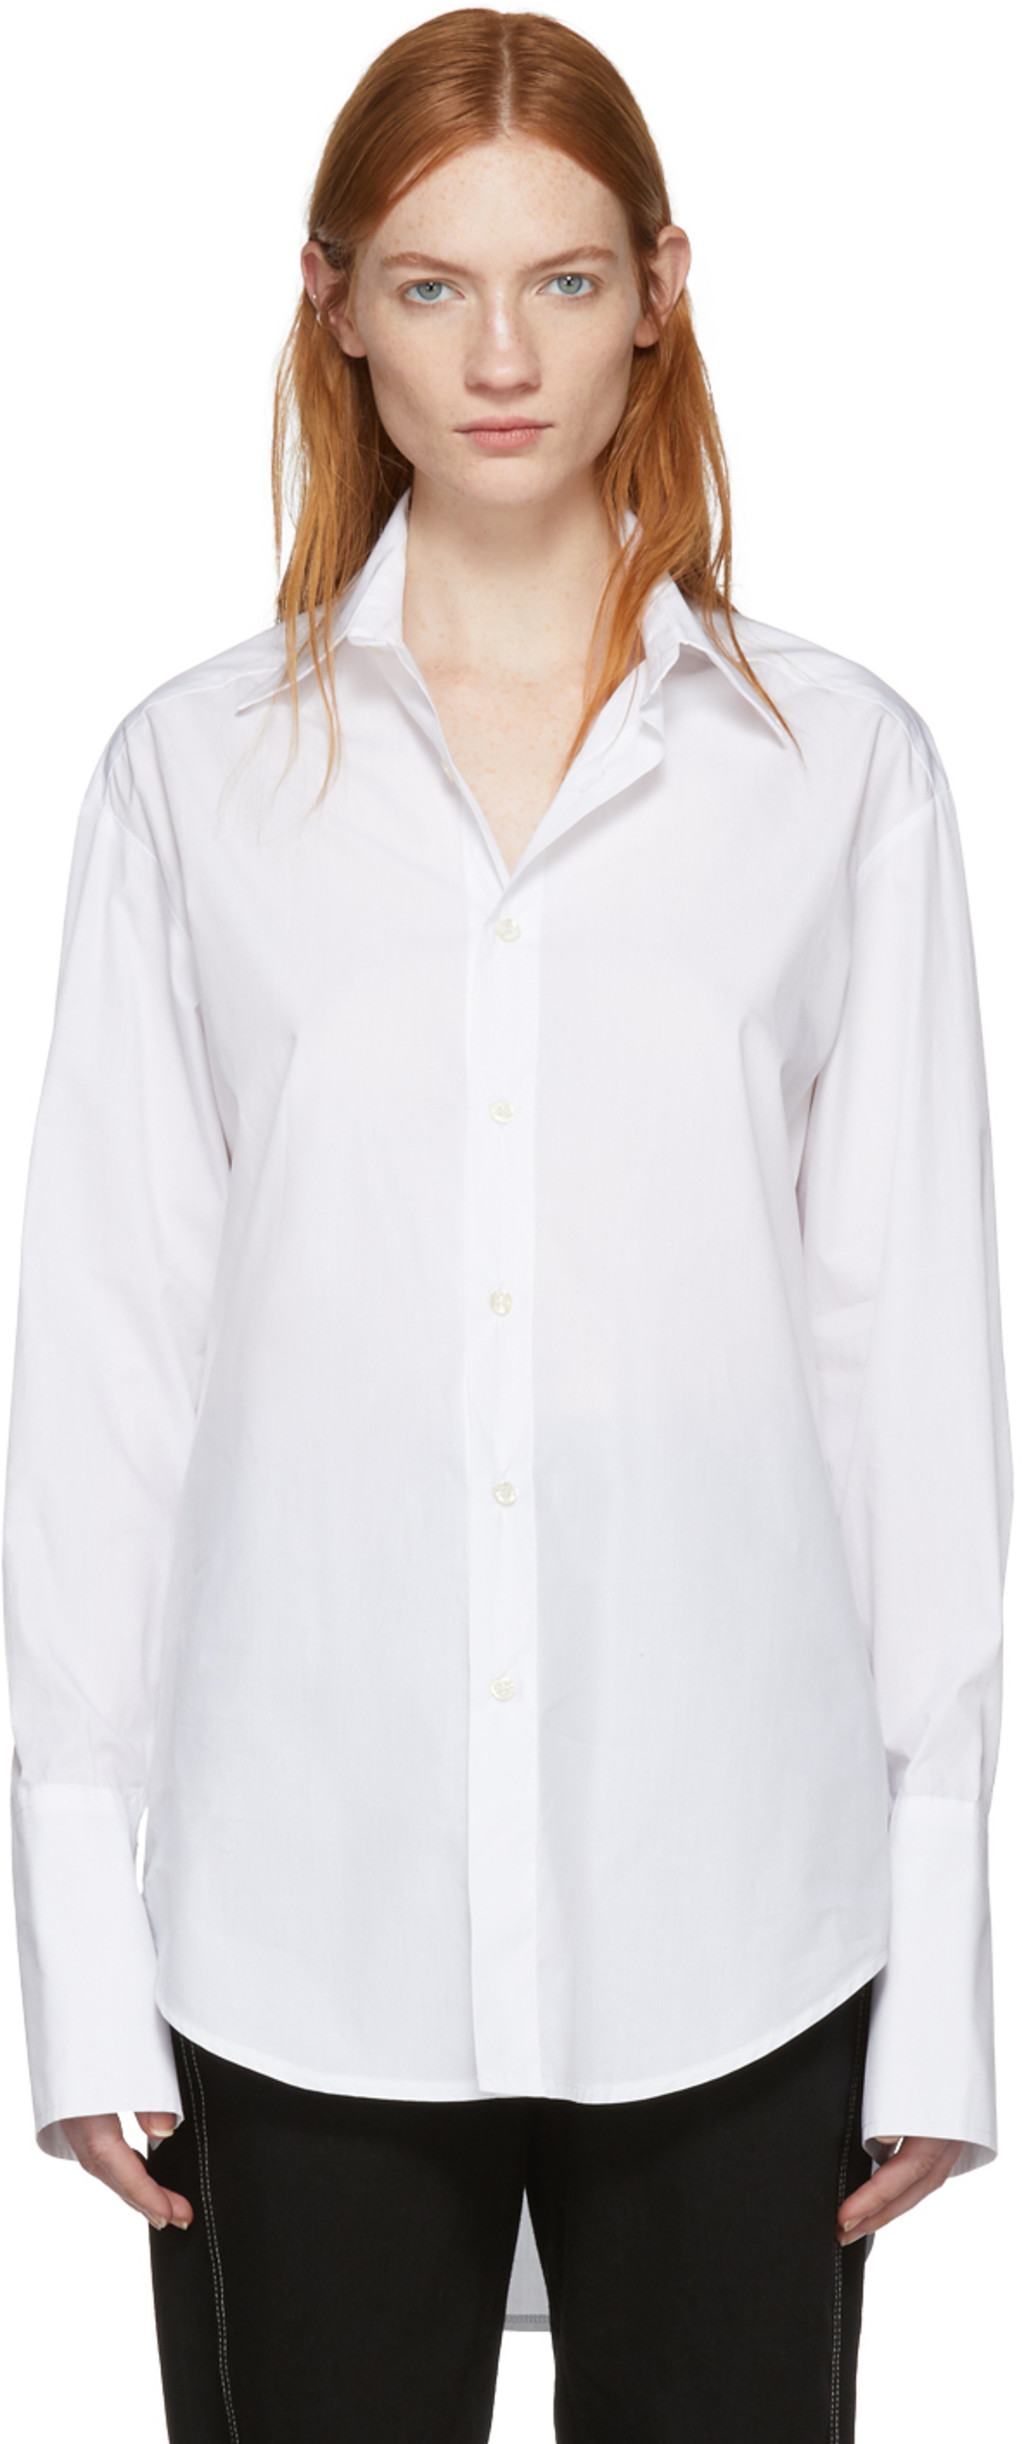 Designer shirts for Women | SSENSE